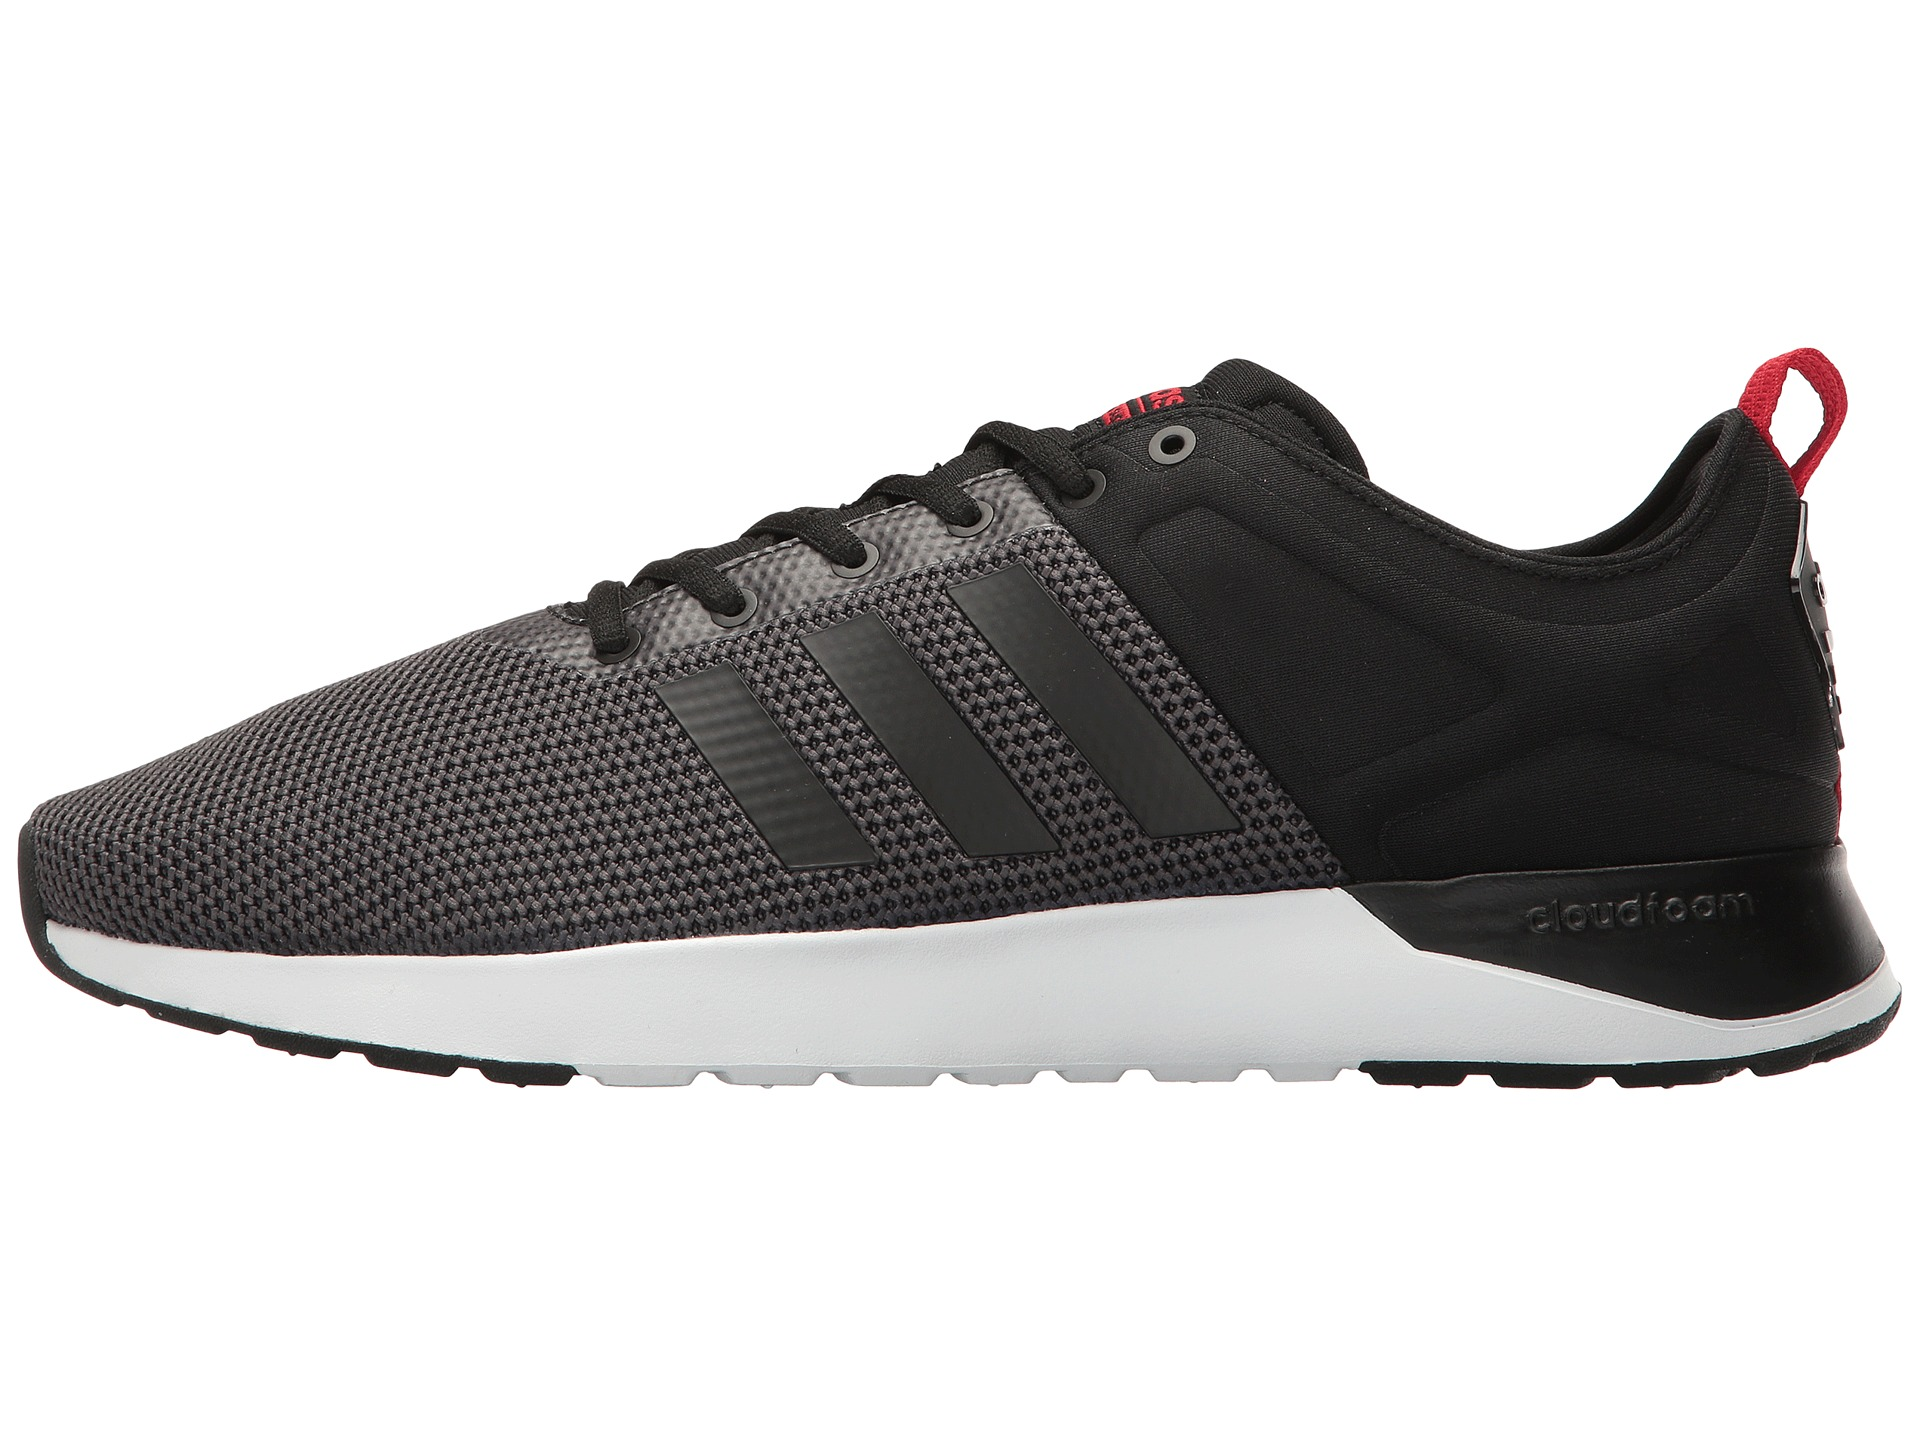 adidas Cloudfoam Super Racer at 6pm.com